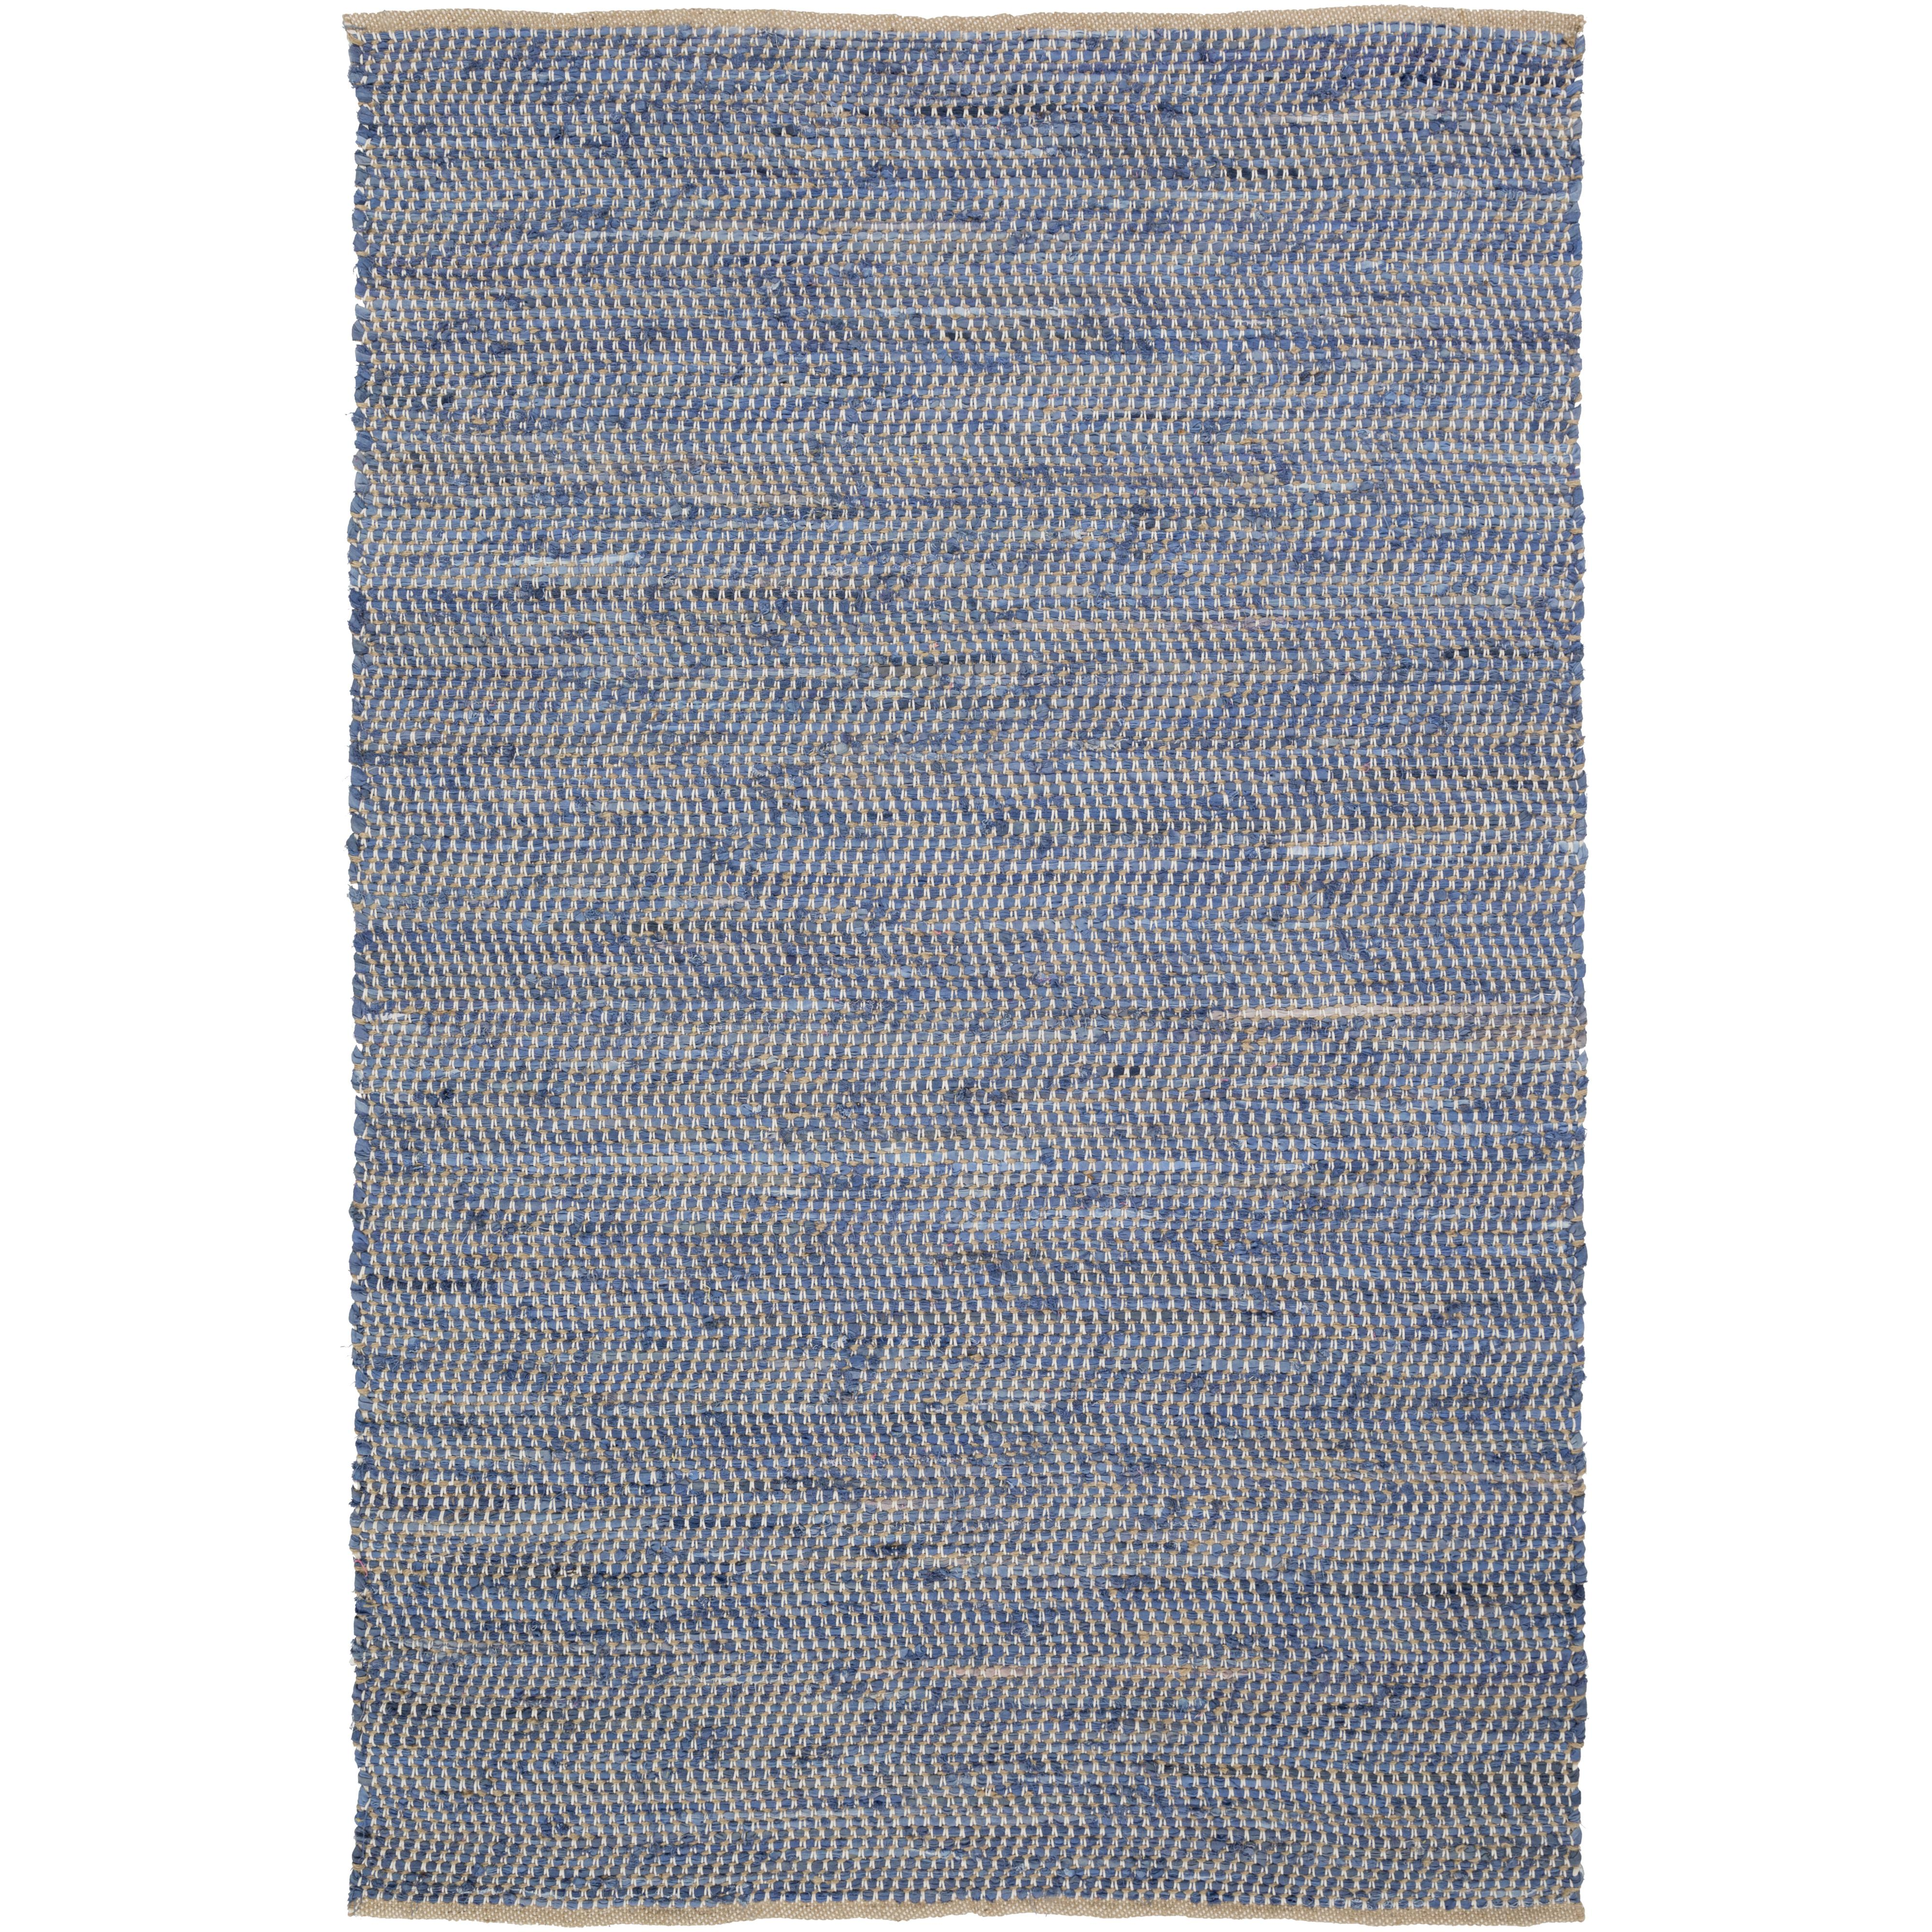 Surya Rugs Fanore 8' x 11' - Item Number: FAN3002-811